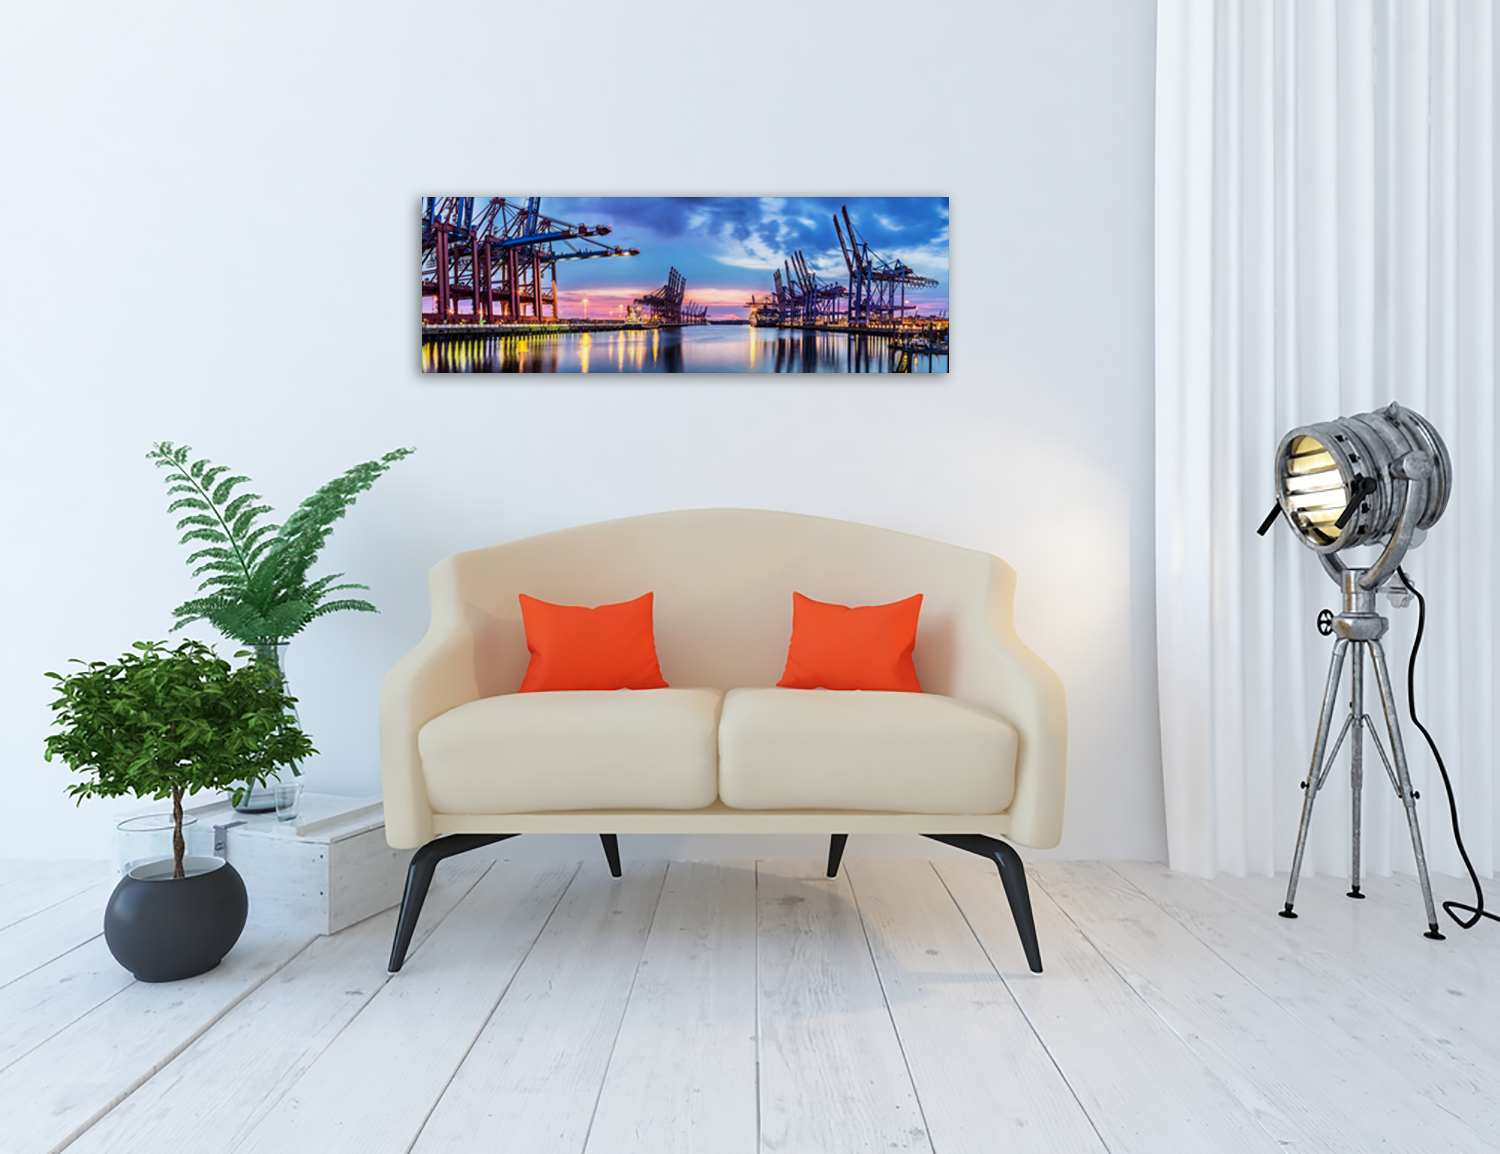 Panoramic Wall Print on Canvas